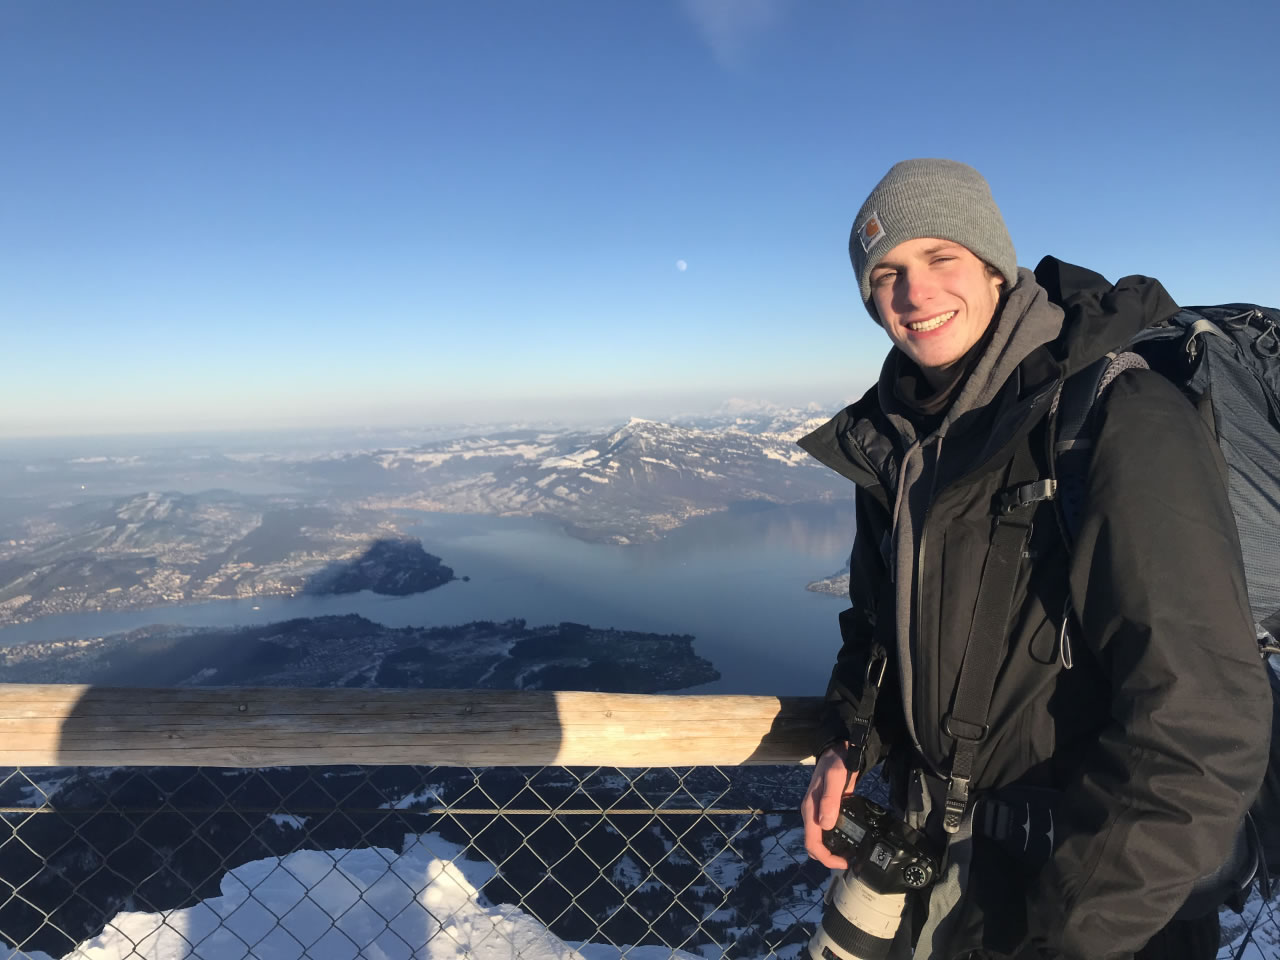 Kyle Niego '19 poses in front of Mt. Pilatus in Switzerland during his time abroad (Niego).